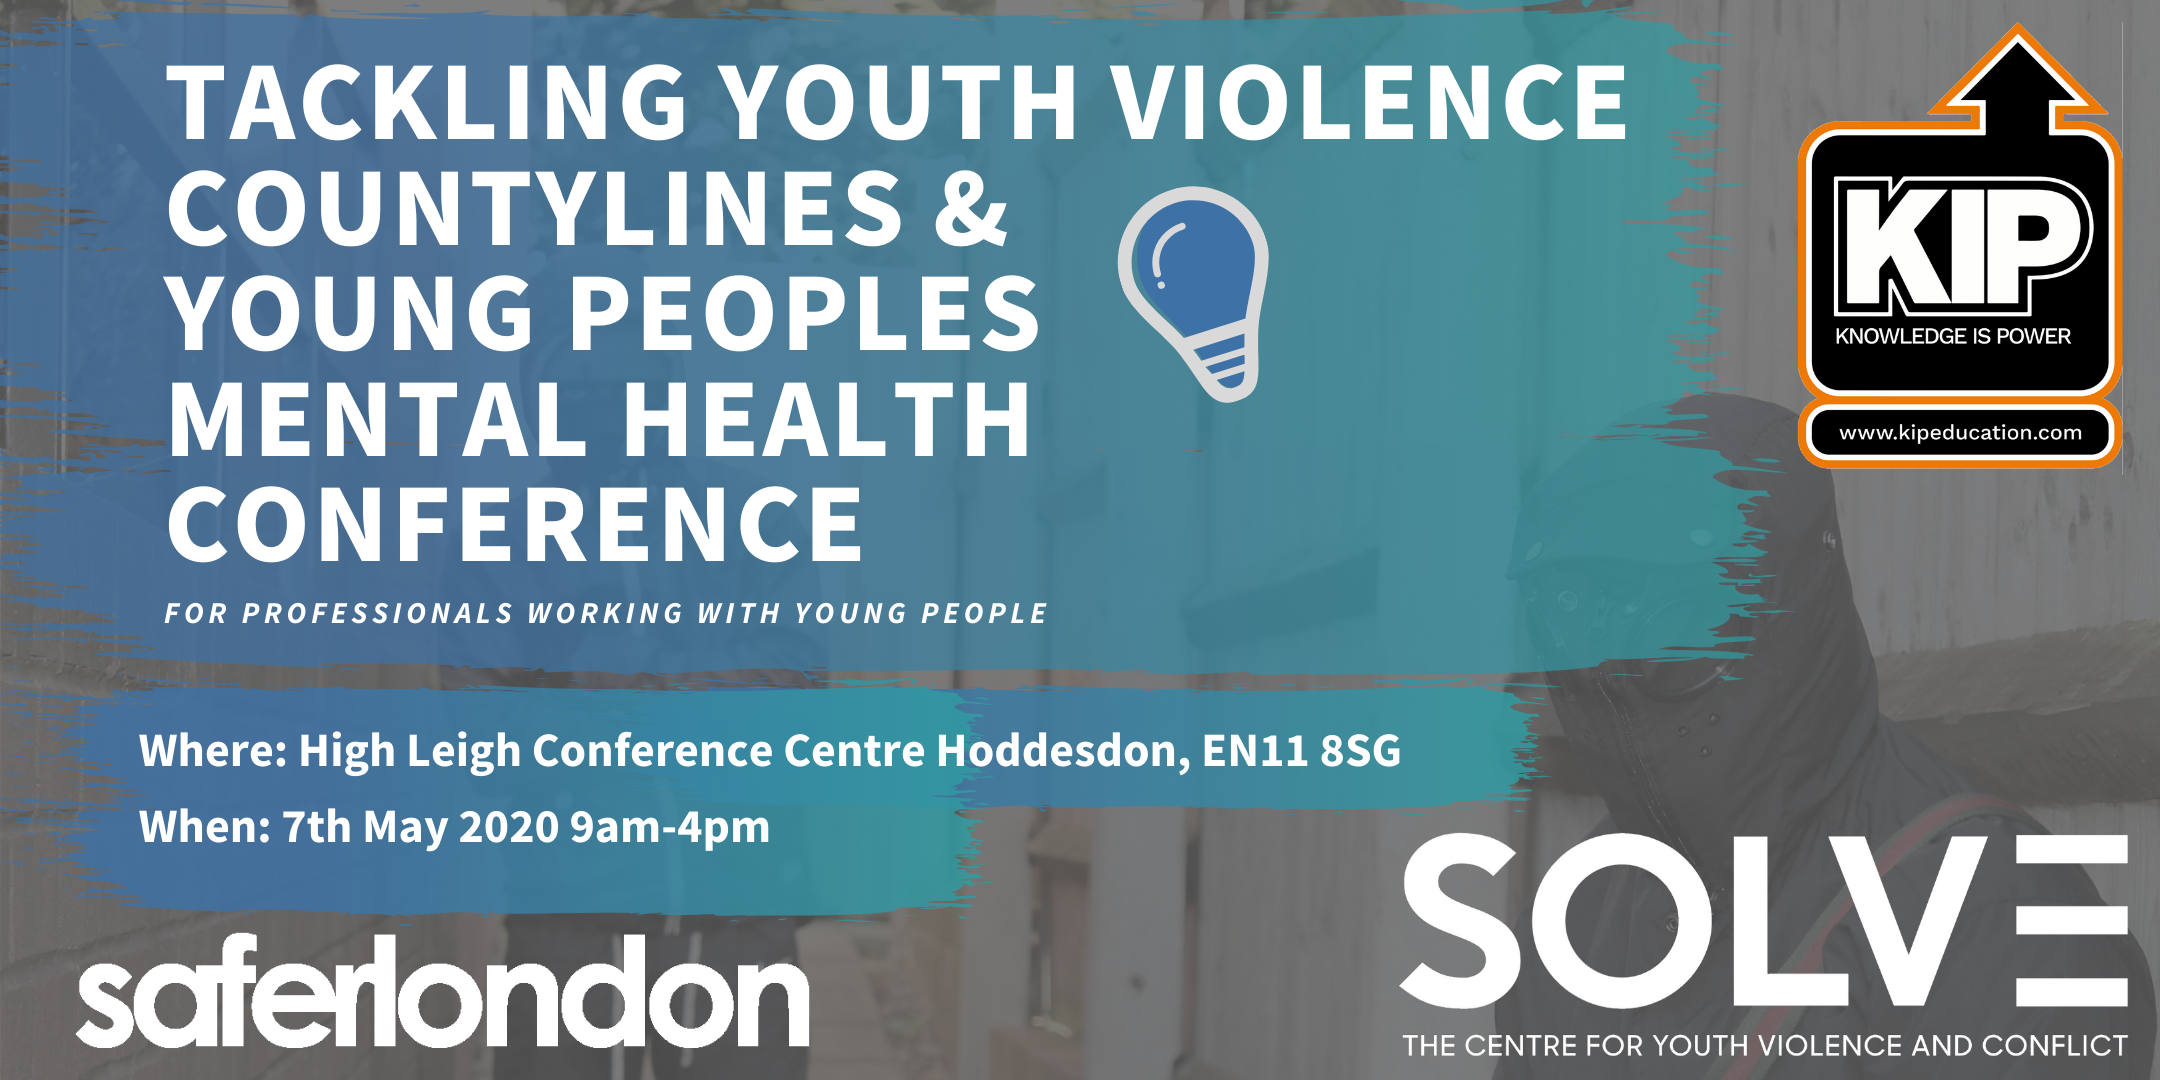 Tackling Youth Violence, Countylines & Young Peoples Mental Health Conference